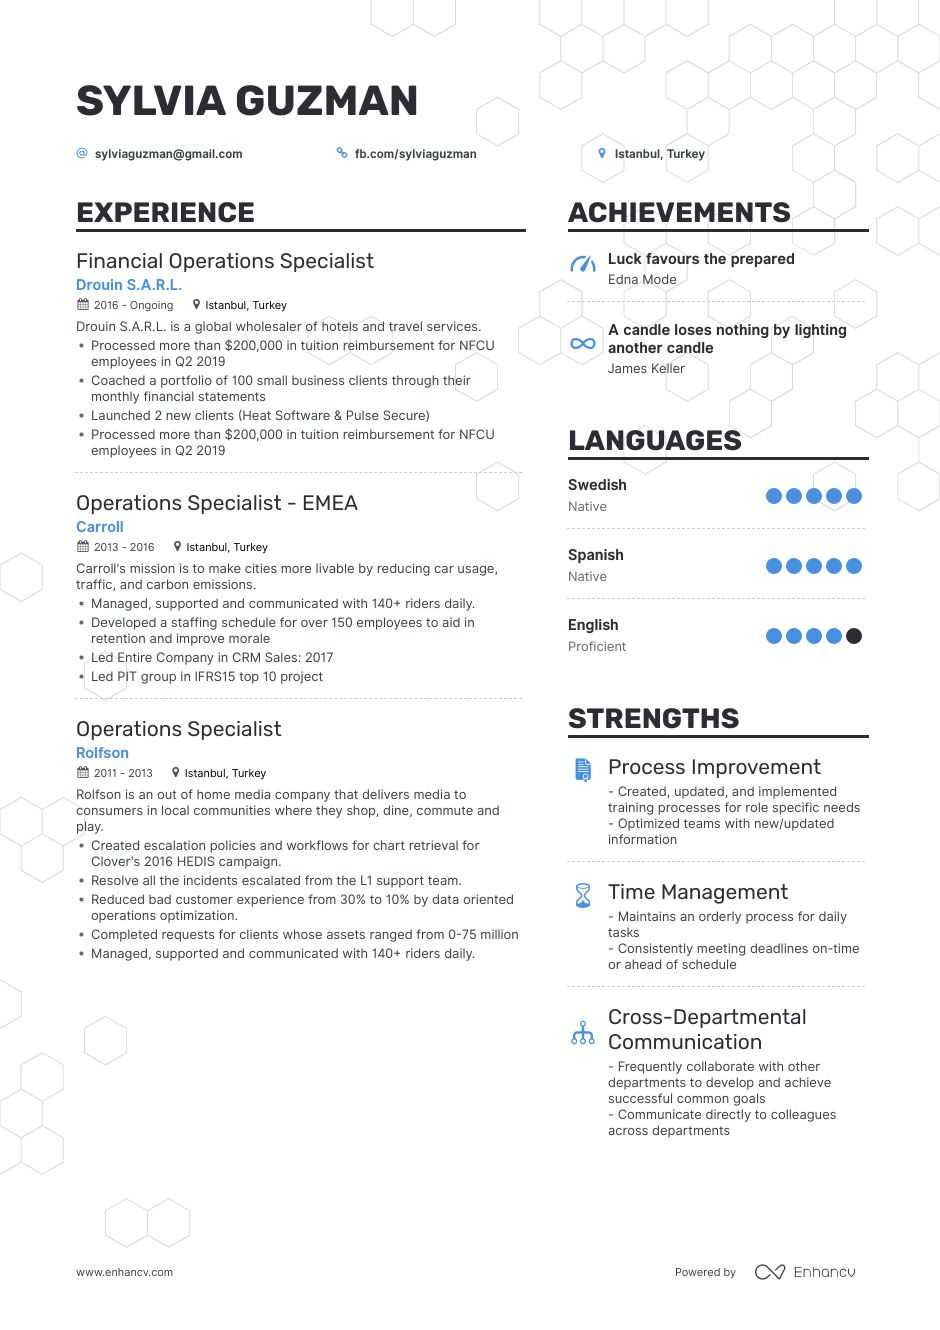 operations specialist resume example for enhancv different styles oracle fusion hcm Resume Operations Specialist Resume